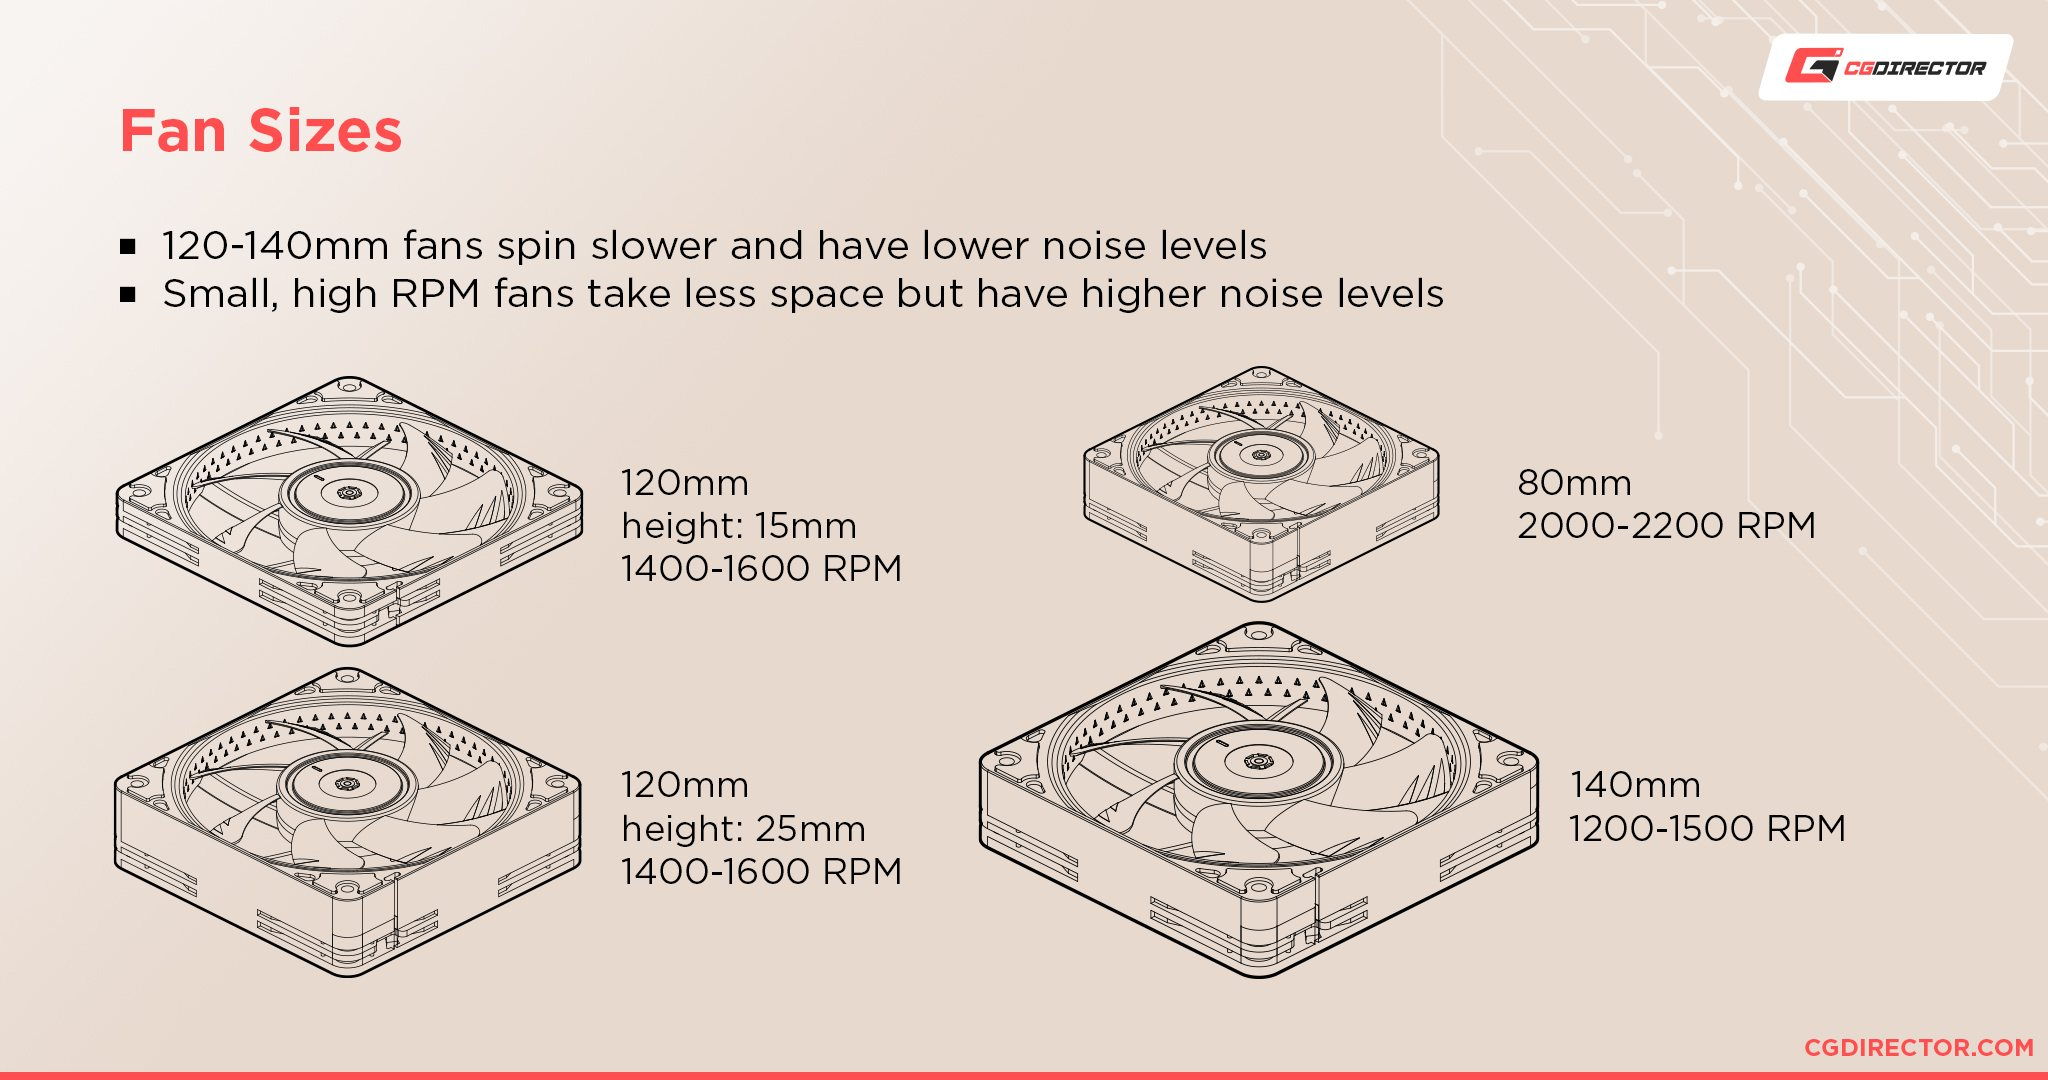 Fan speed and noise levels